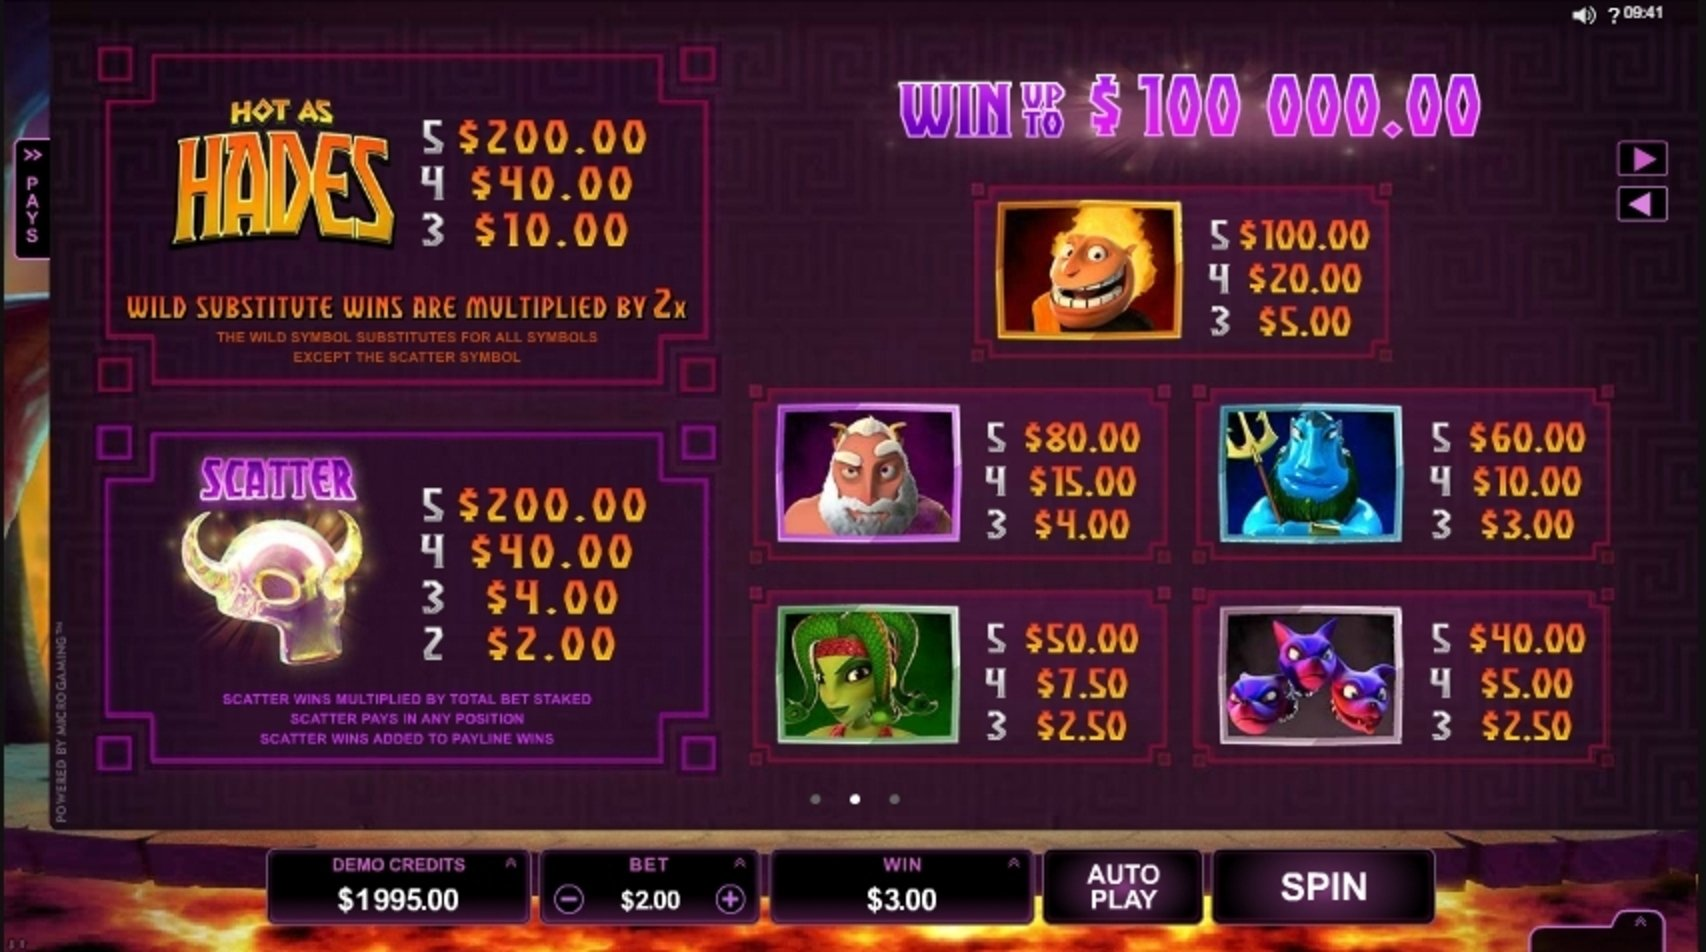 Hot as Hades Slot Machine - Play Free with No Download